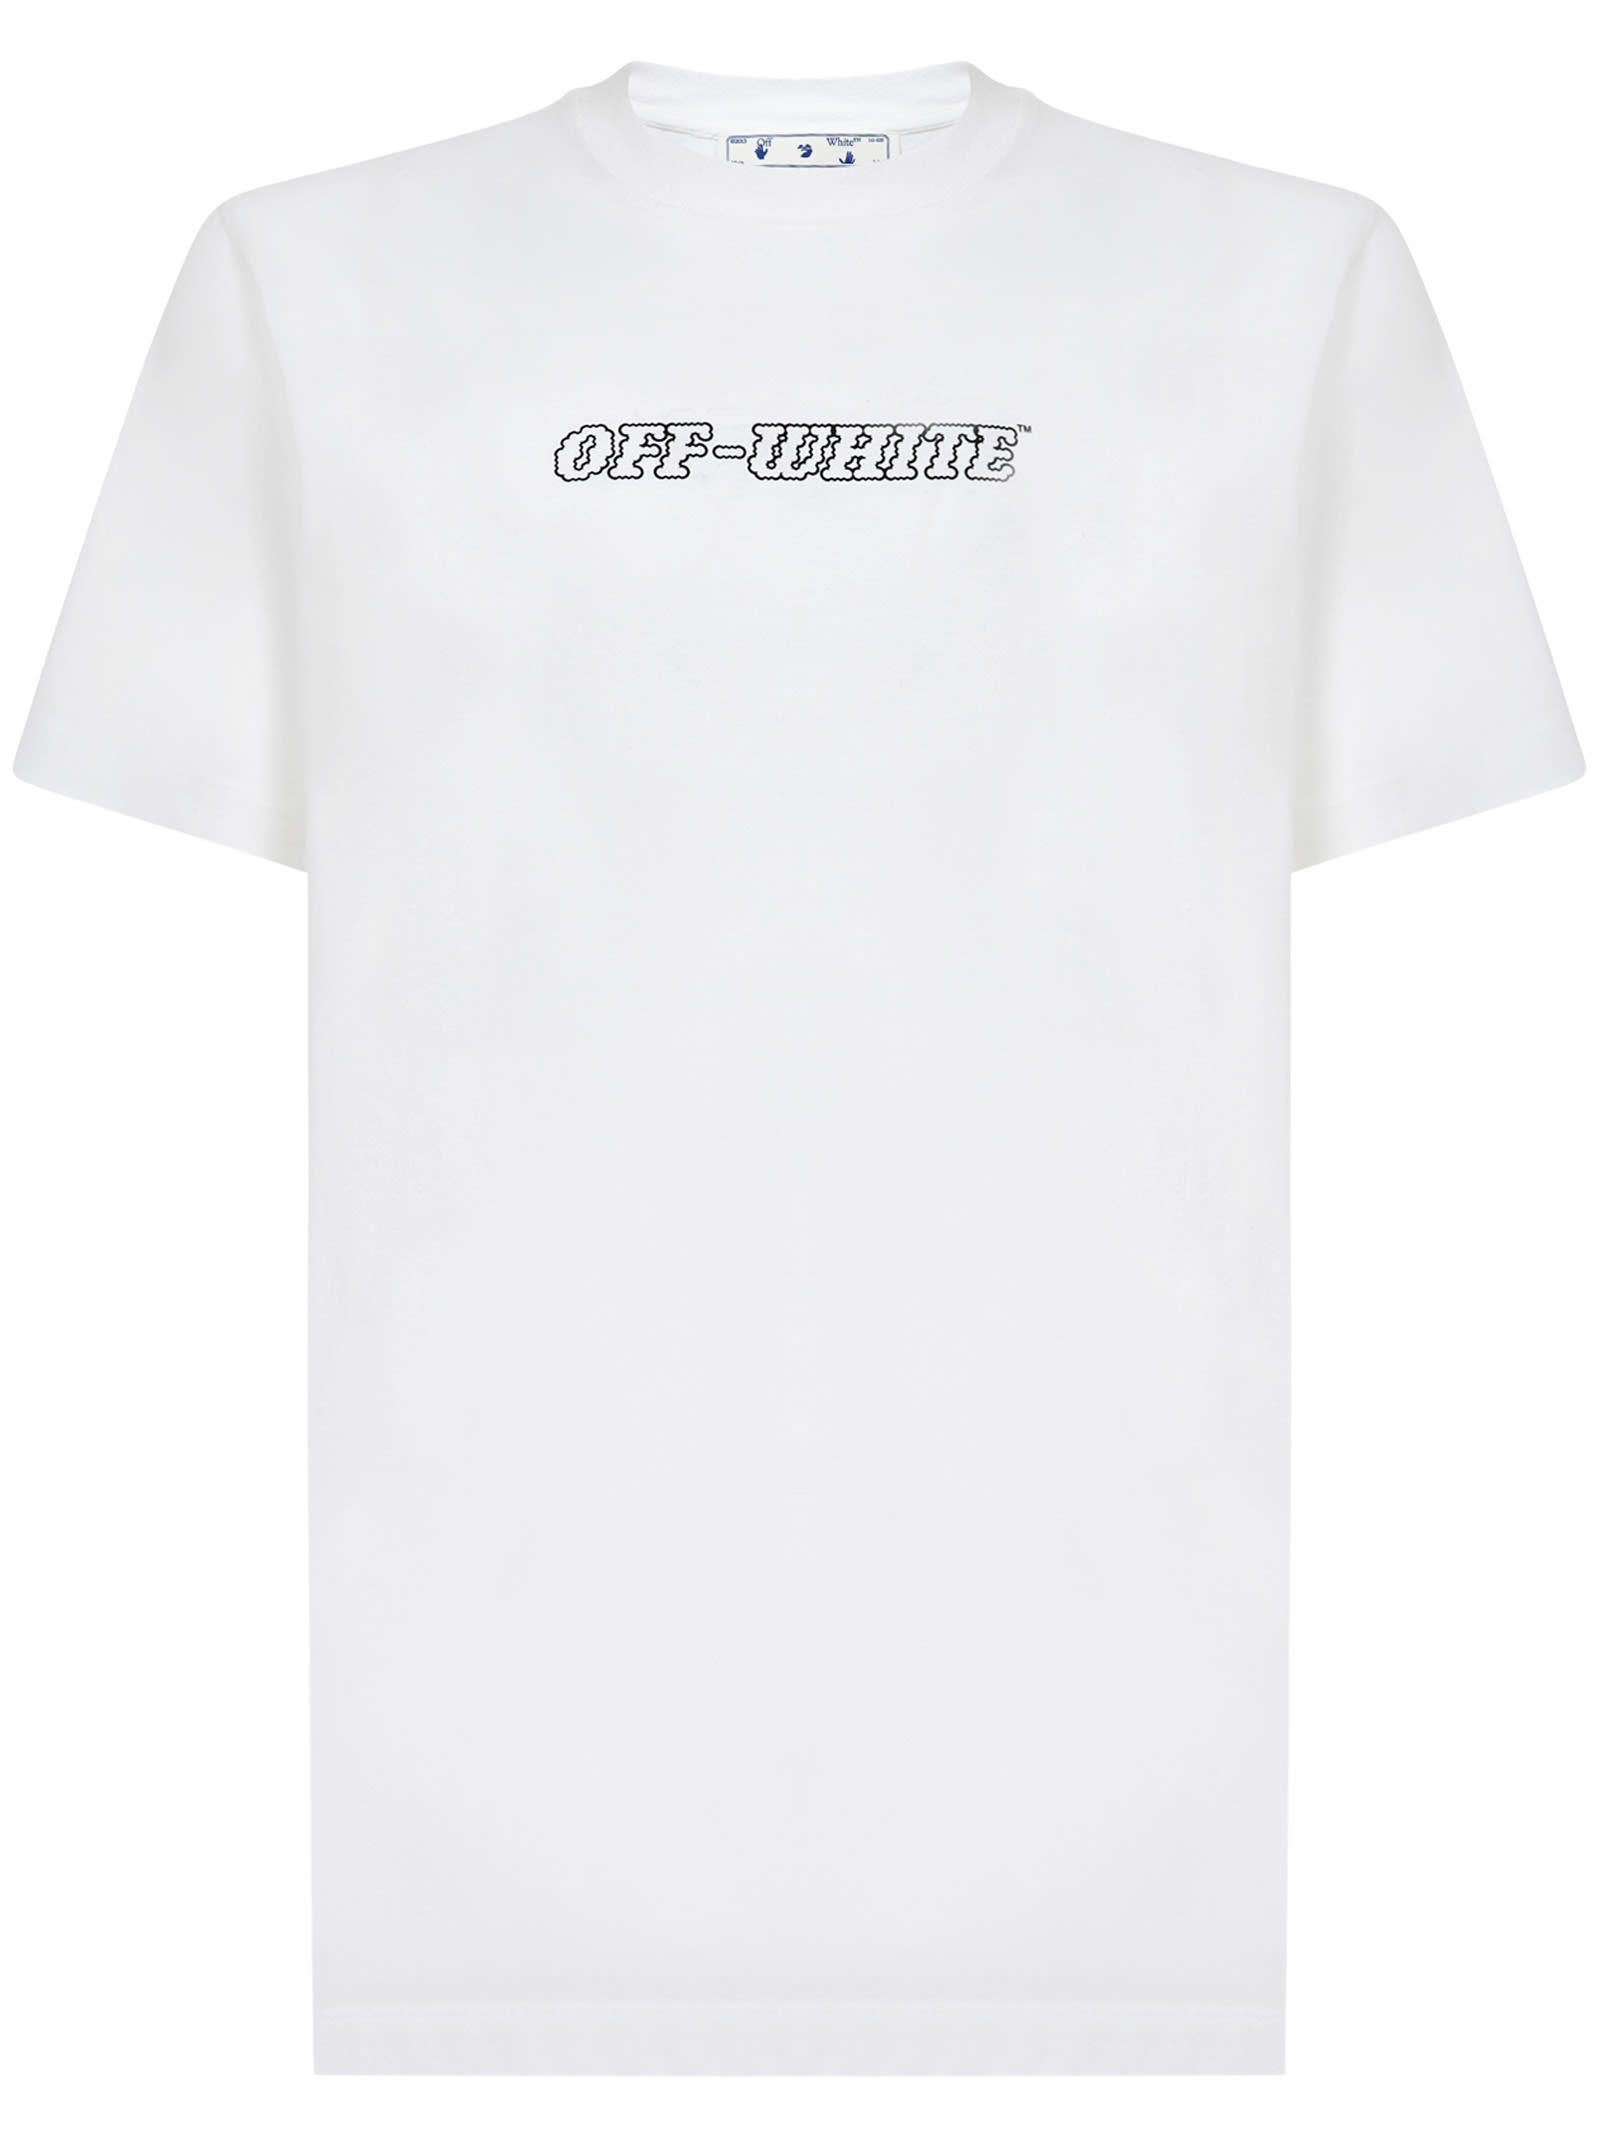 Off-White Cottons PASCAL PAINTING T-SHIRT